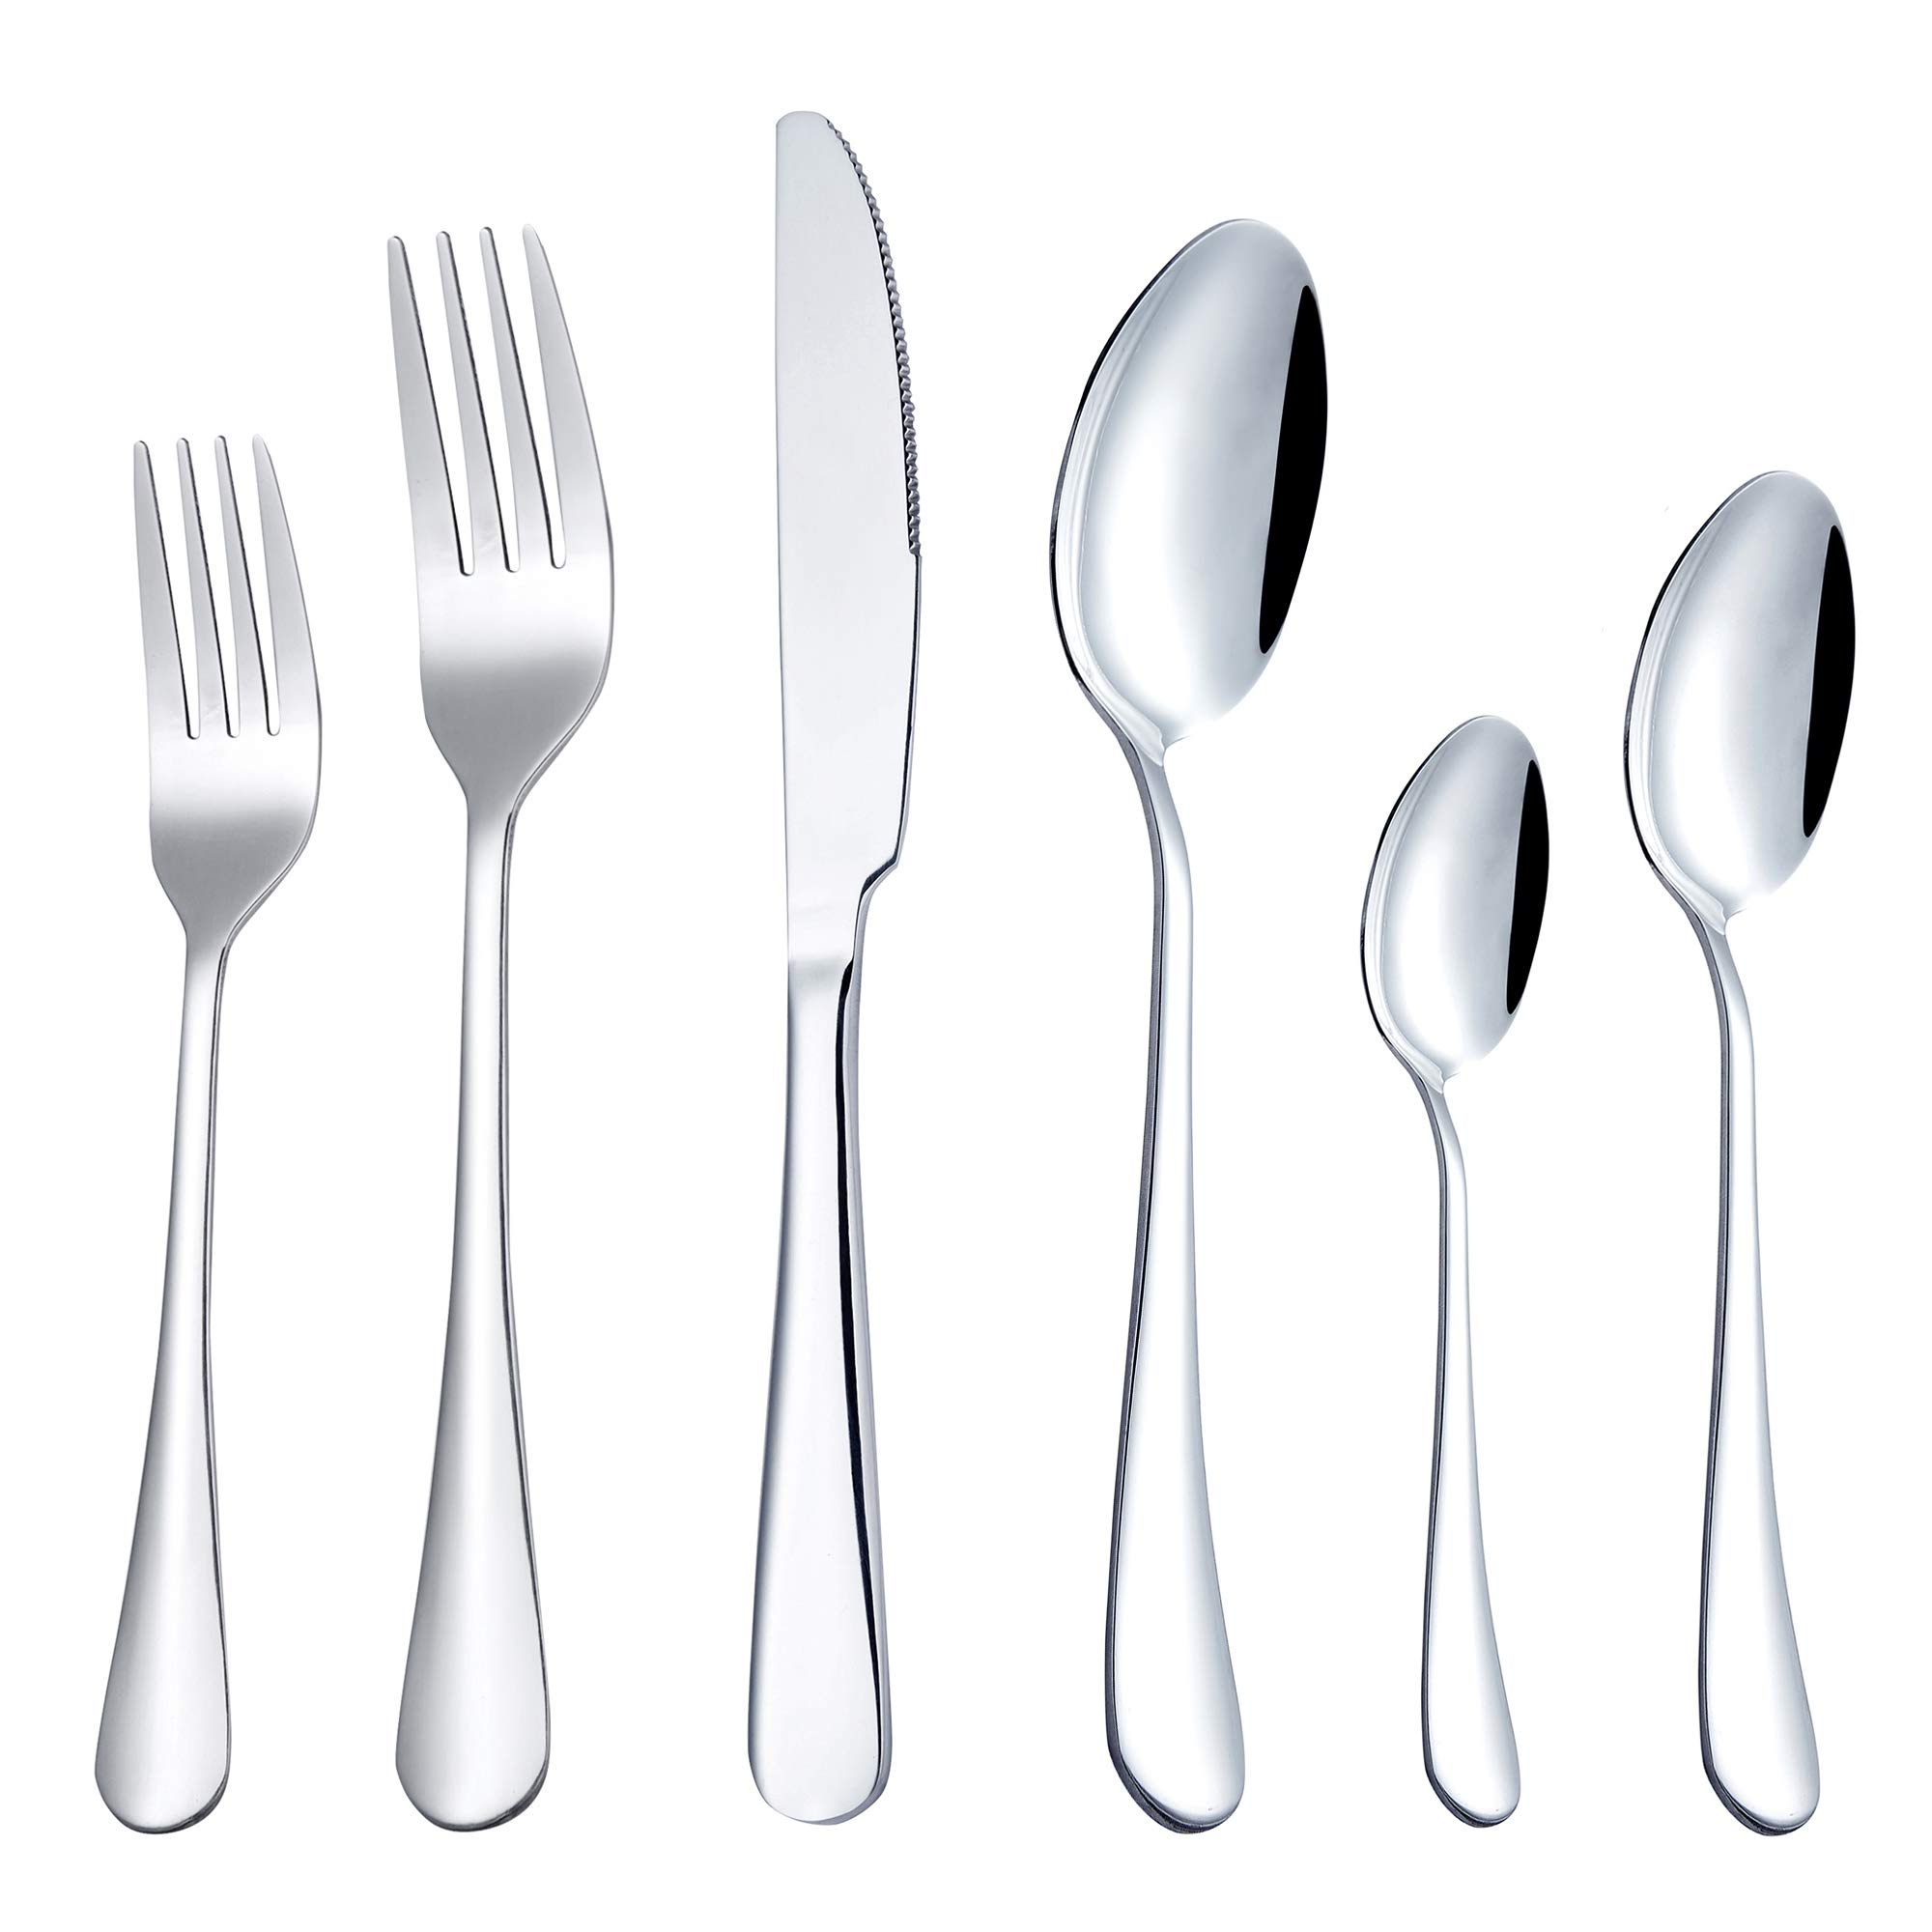 Flatware Silverware Set for 4, 24-Piece Cutlery Tableware Set, SHUNBIN Stainless Steel Utensils Service,with Knife Fork and Spoon,for Kitchen Hotel Party,Dishwasher Safe,Mirror Polished